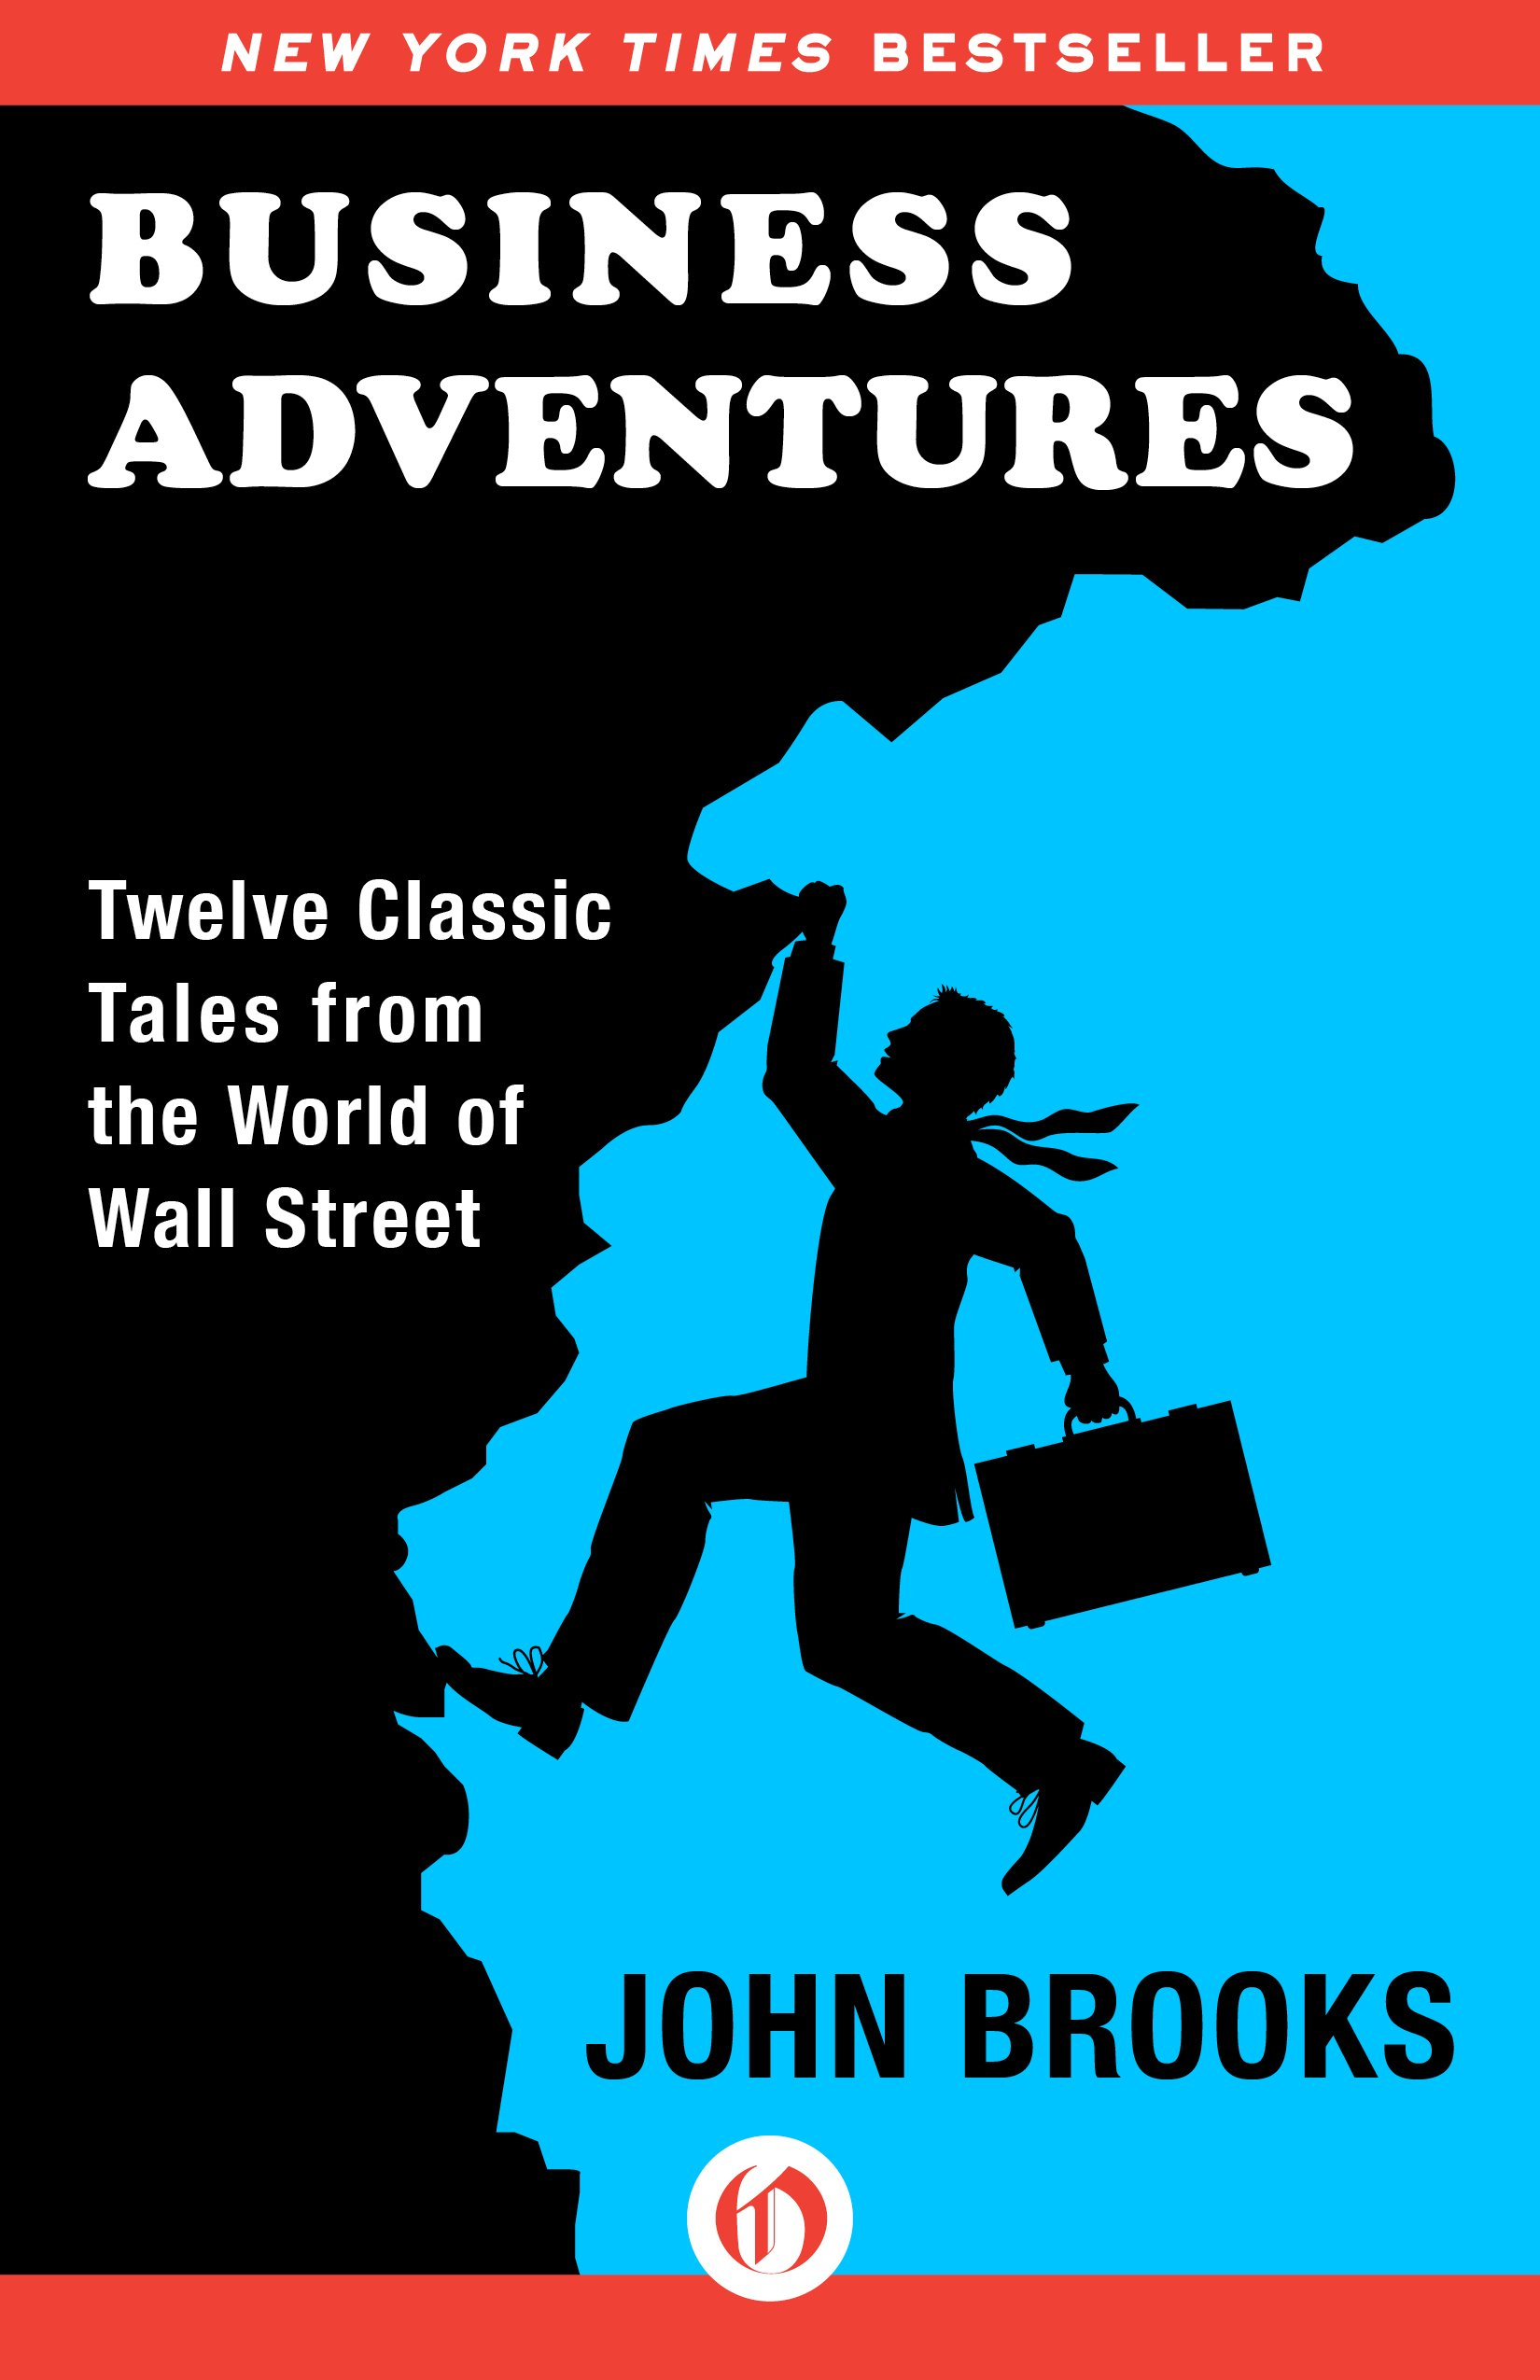 Business Adventures: Twelve Classic Tales from the World of Wall Street ISBN-13 9781497644892